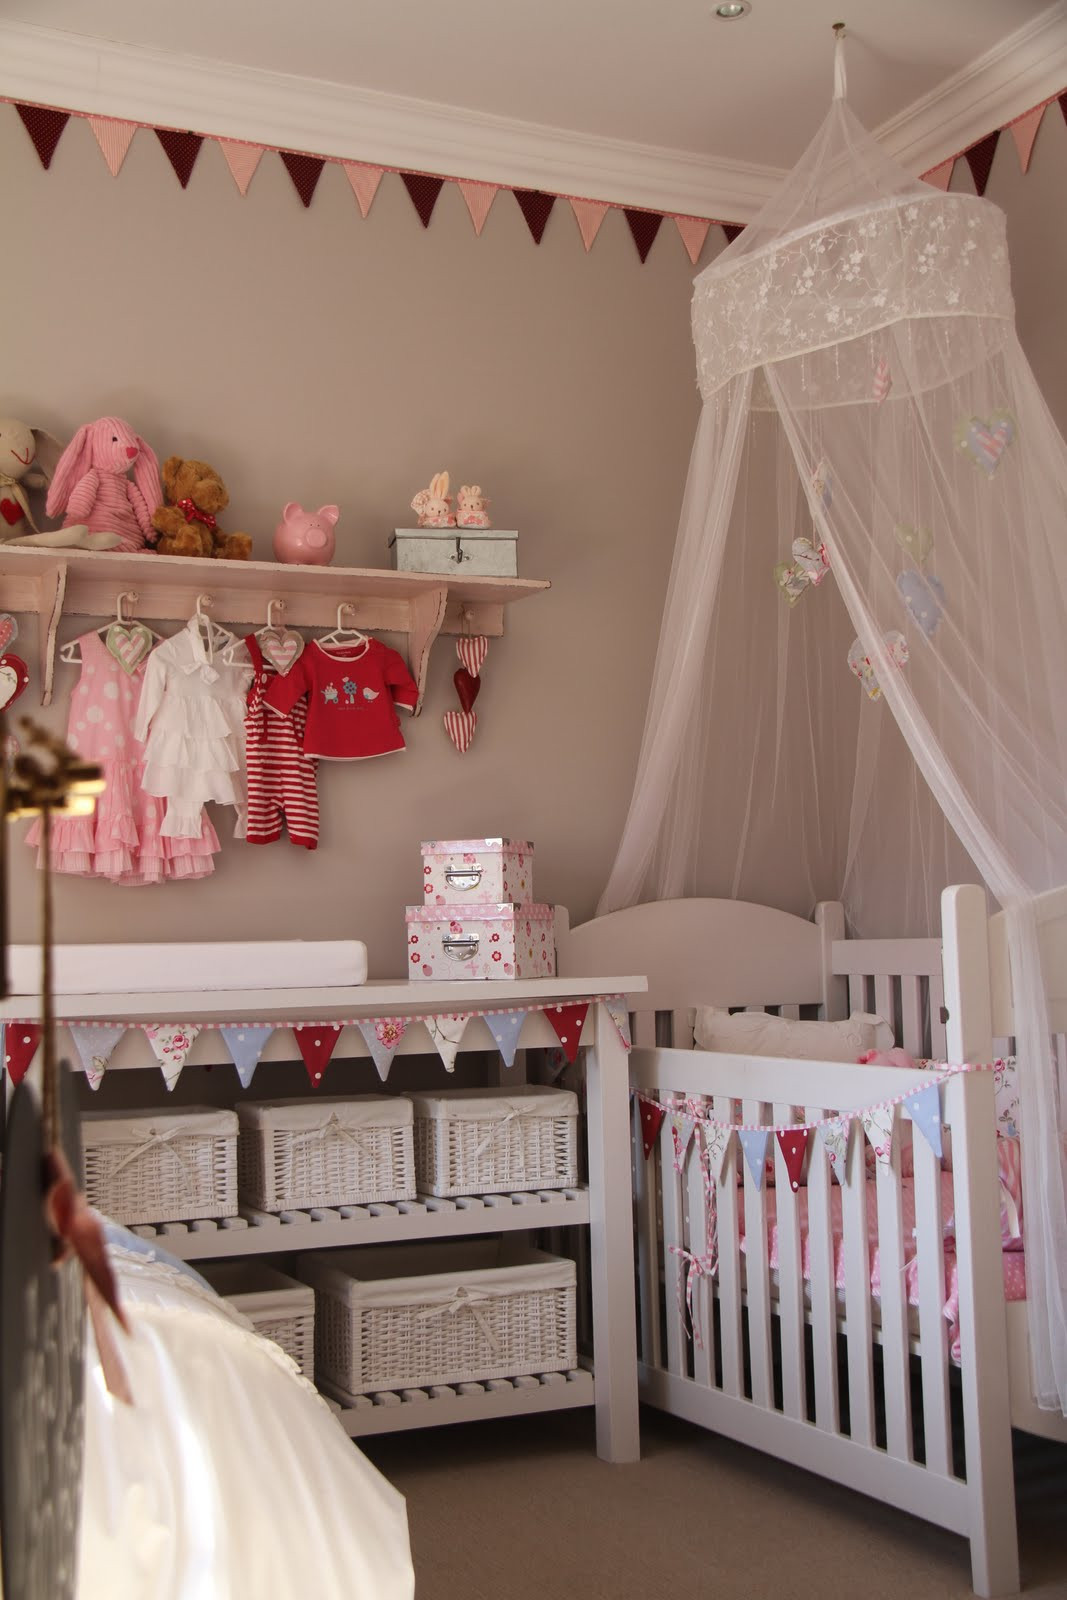 Best ideas about DIY Baby Rooms Ideas . Save or Pin I SPY PRETTY Our Baby Girl Mia s DIY Nursery Now.